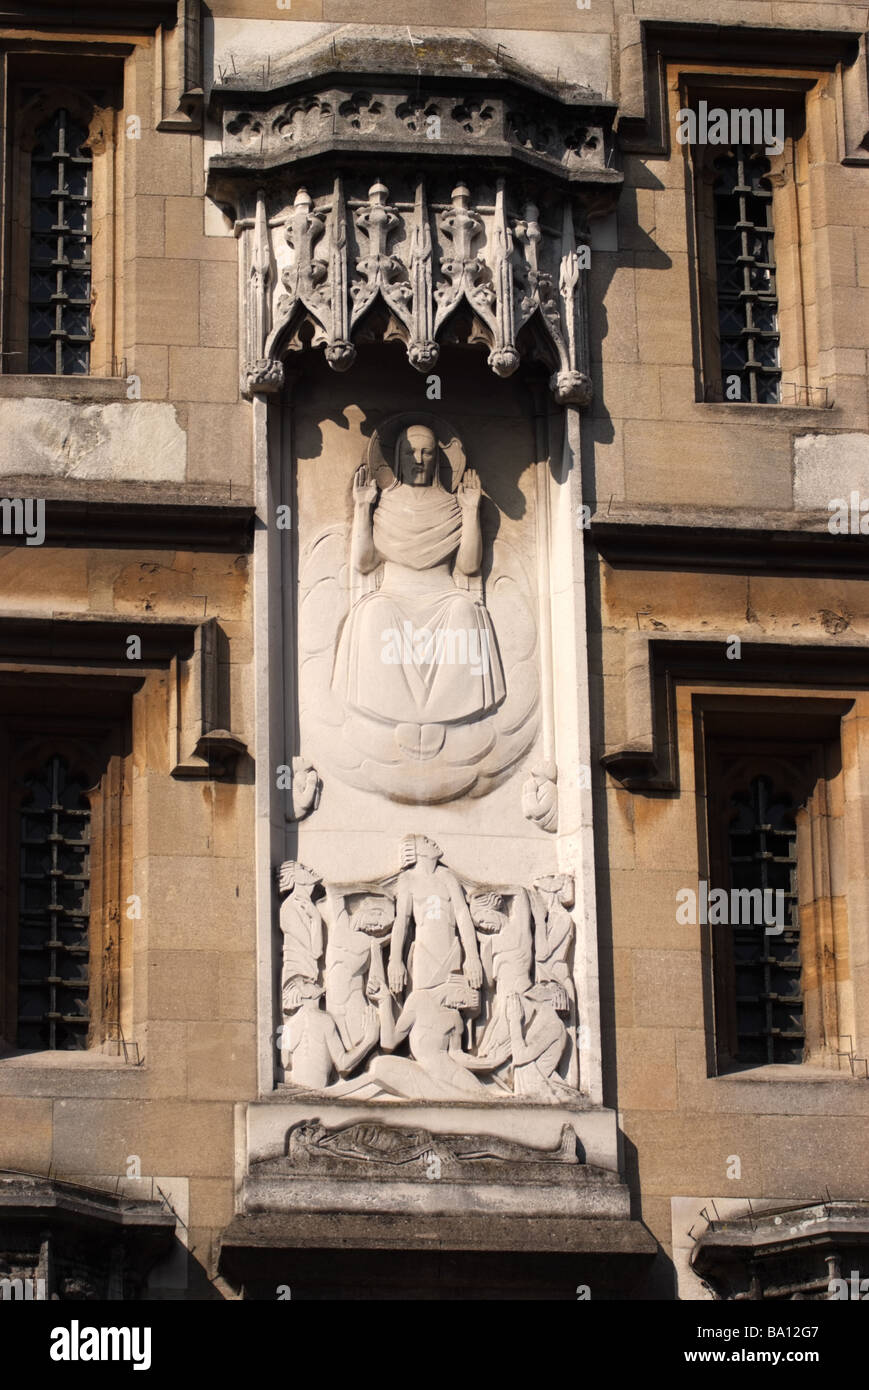 Statue of Christ in niche of All Soul's College, Oxford, England - Stock Image